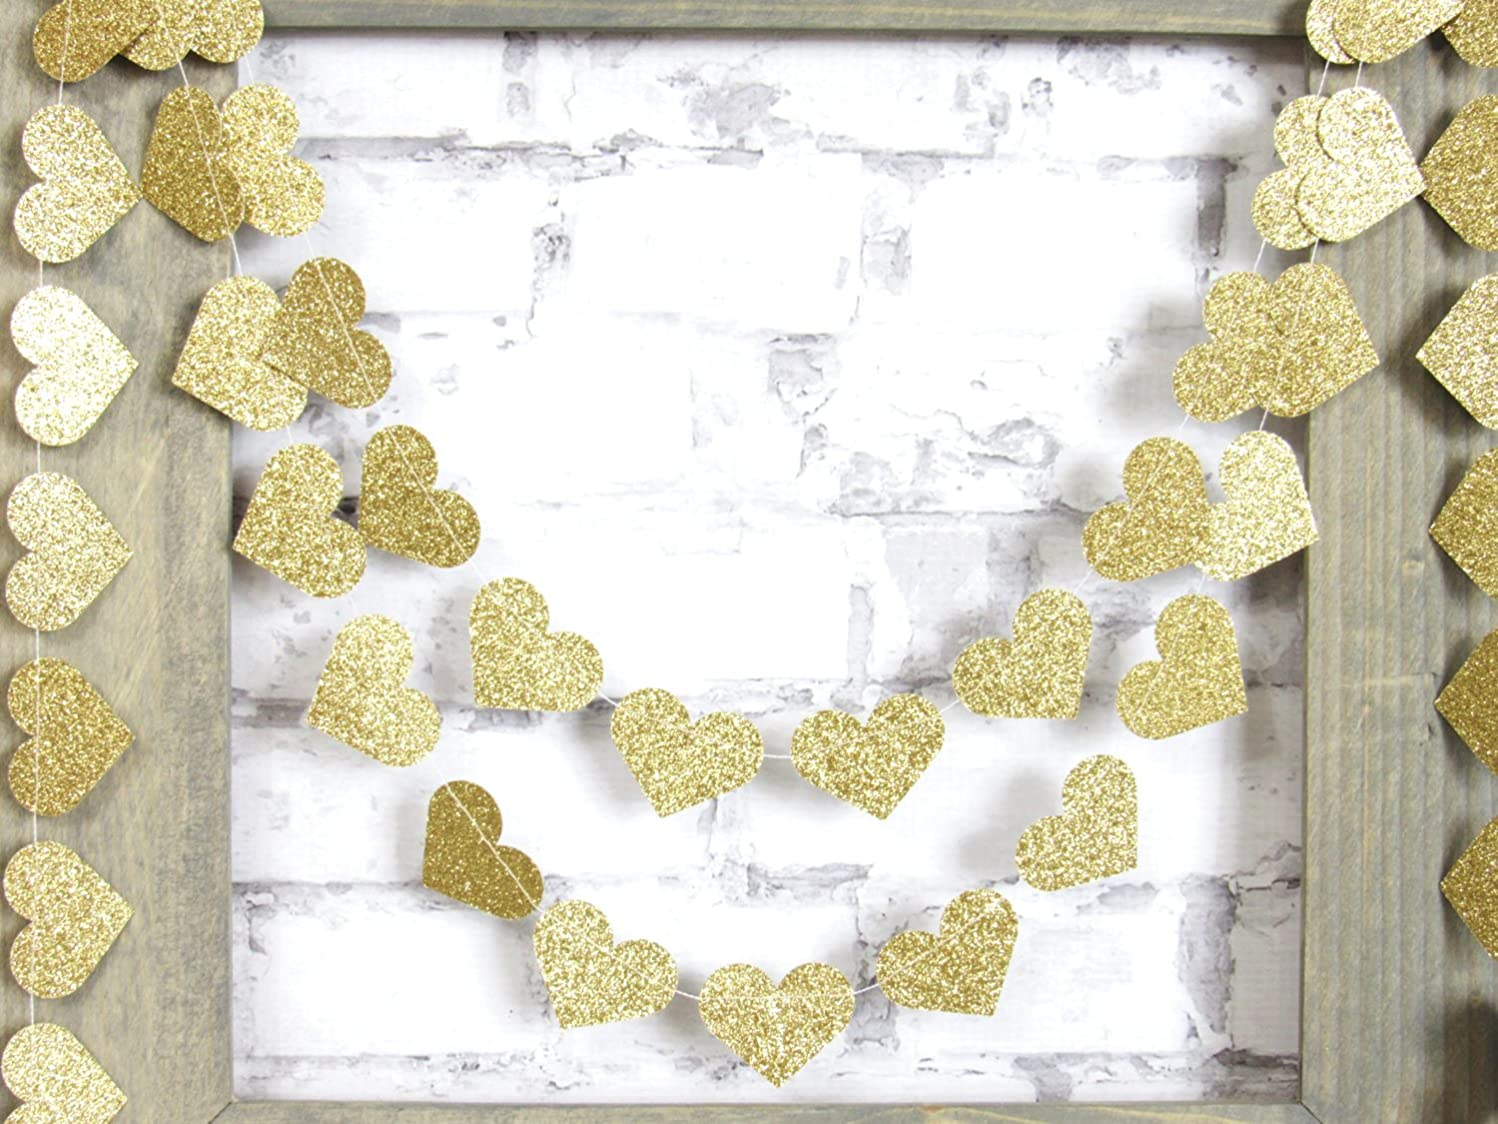 My lifestyle 4-Pack,Glitter Gold Heart Garland, Twinkle Star Garland Christmas Garland, Party Garland, Party Decoration,Home Decor,Christmas Decor, Gold Baby Shower (4 inch in Diameter, 13 Feet)